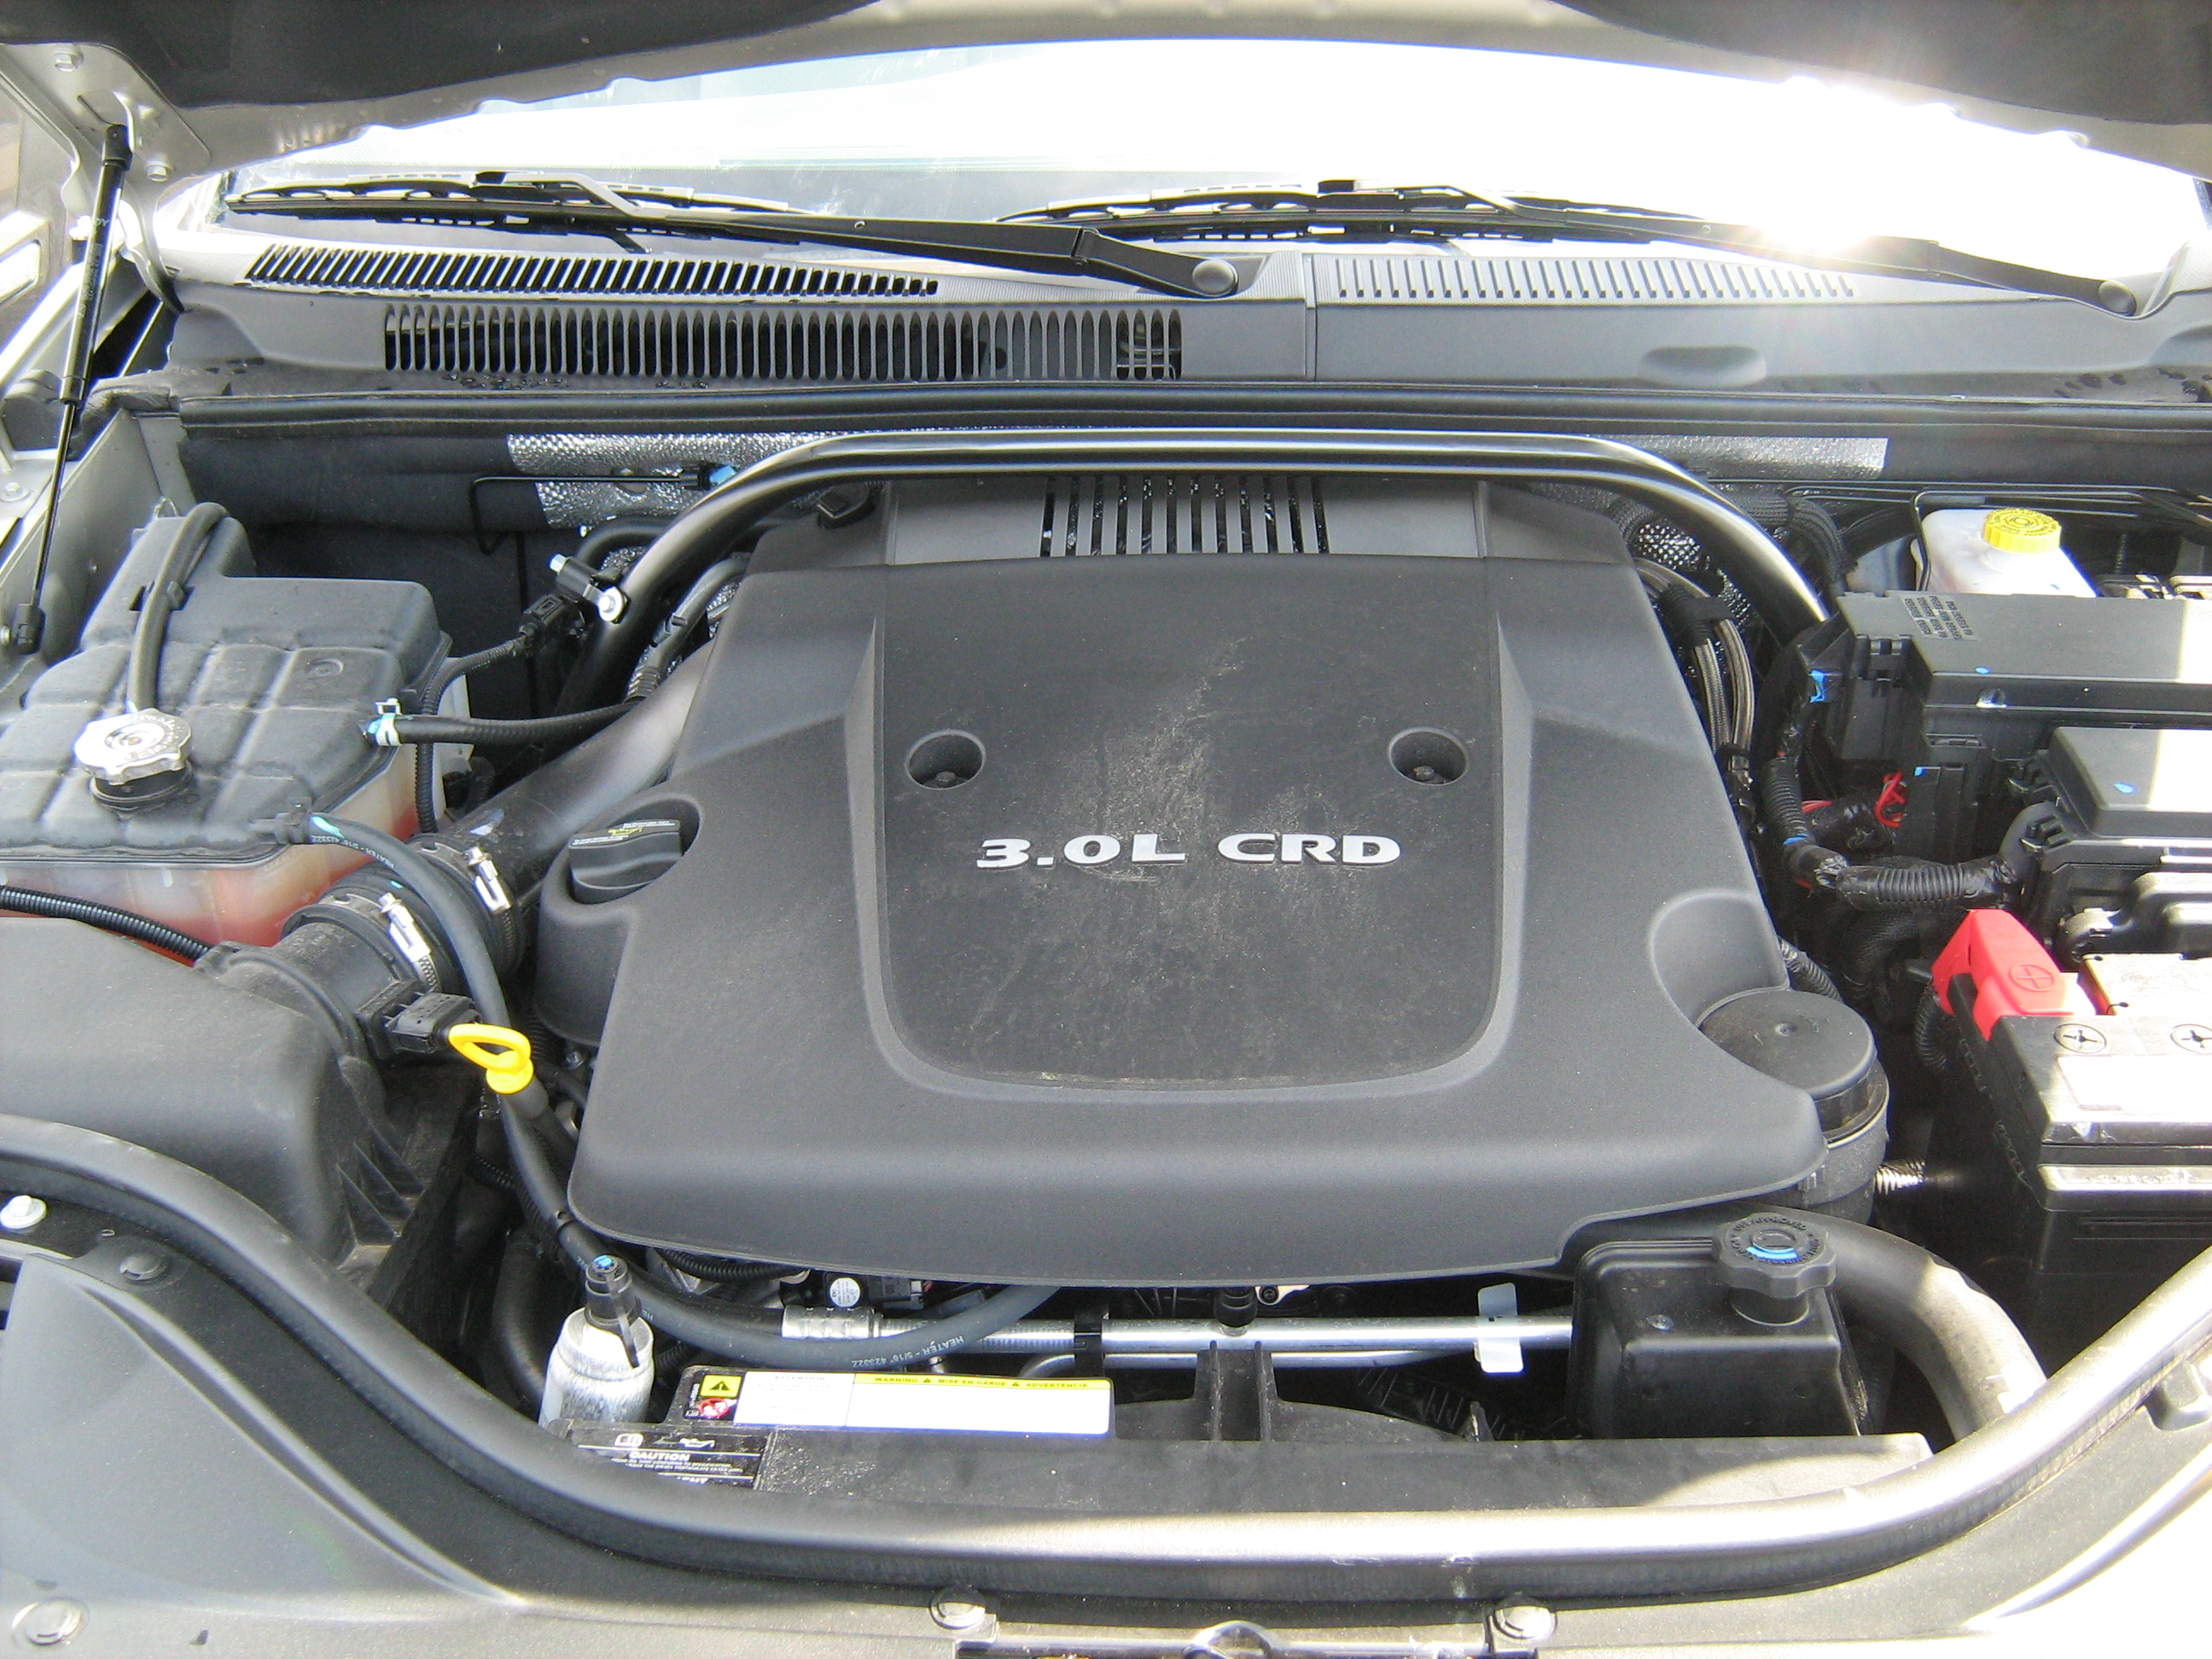 file:2008 jeep grand cherokee 3.0 diesel engine - wikimedia commons